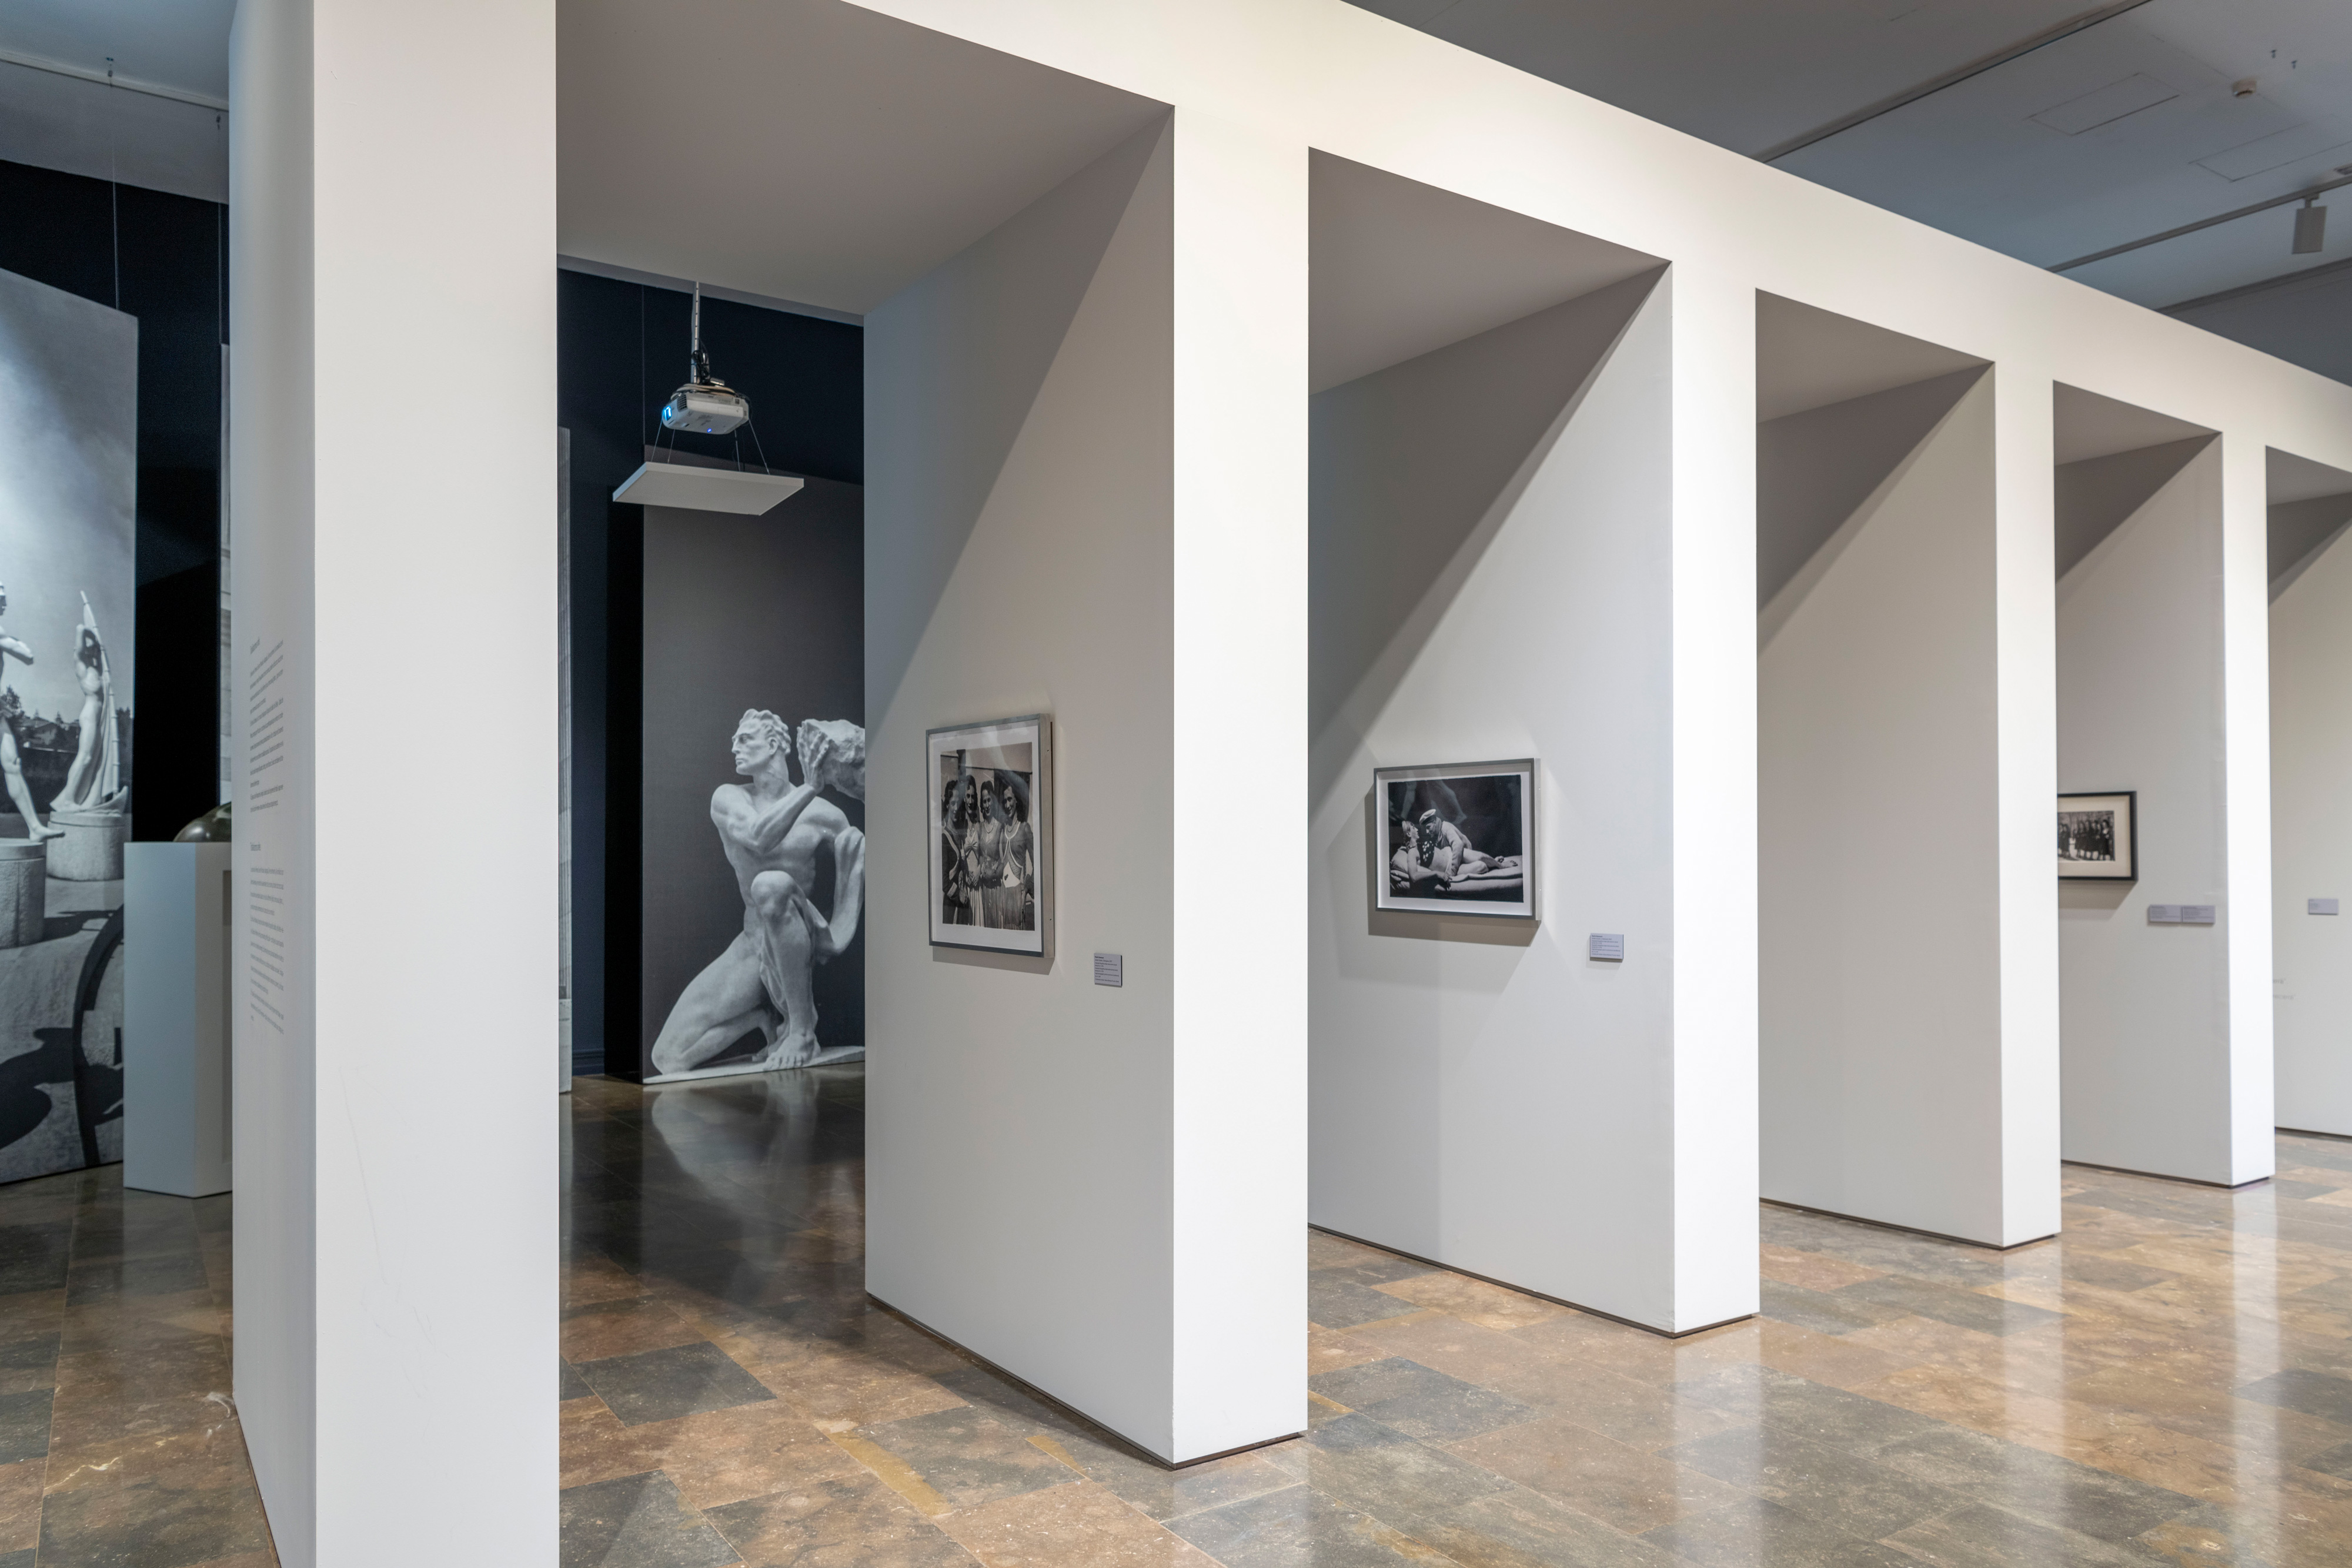 Galerie Barbara Thumm \ Martin Dammann – MORAL DIS/ORDER. Art and sexuality in Europe between the wars